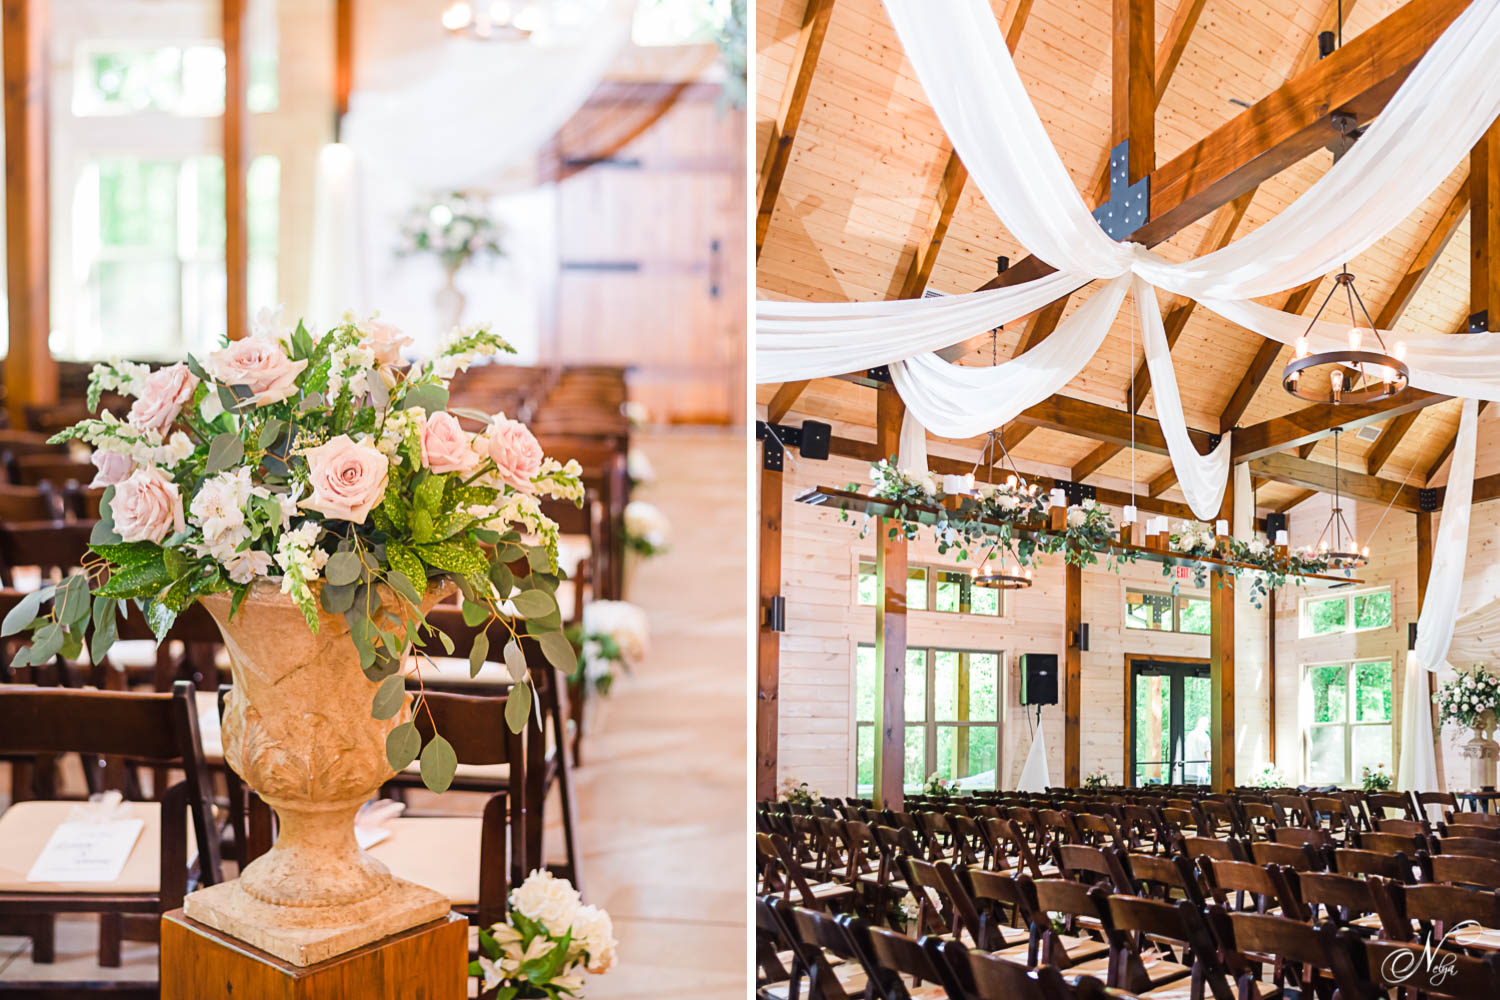 pink rose flower arrangements and wooden folding chairs set up for wedding ceremony inside Hiwassee River Weddings .